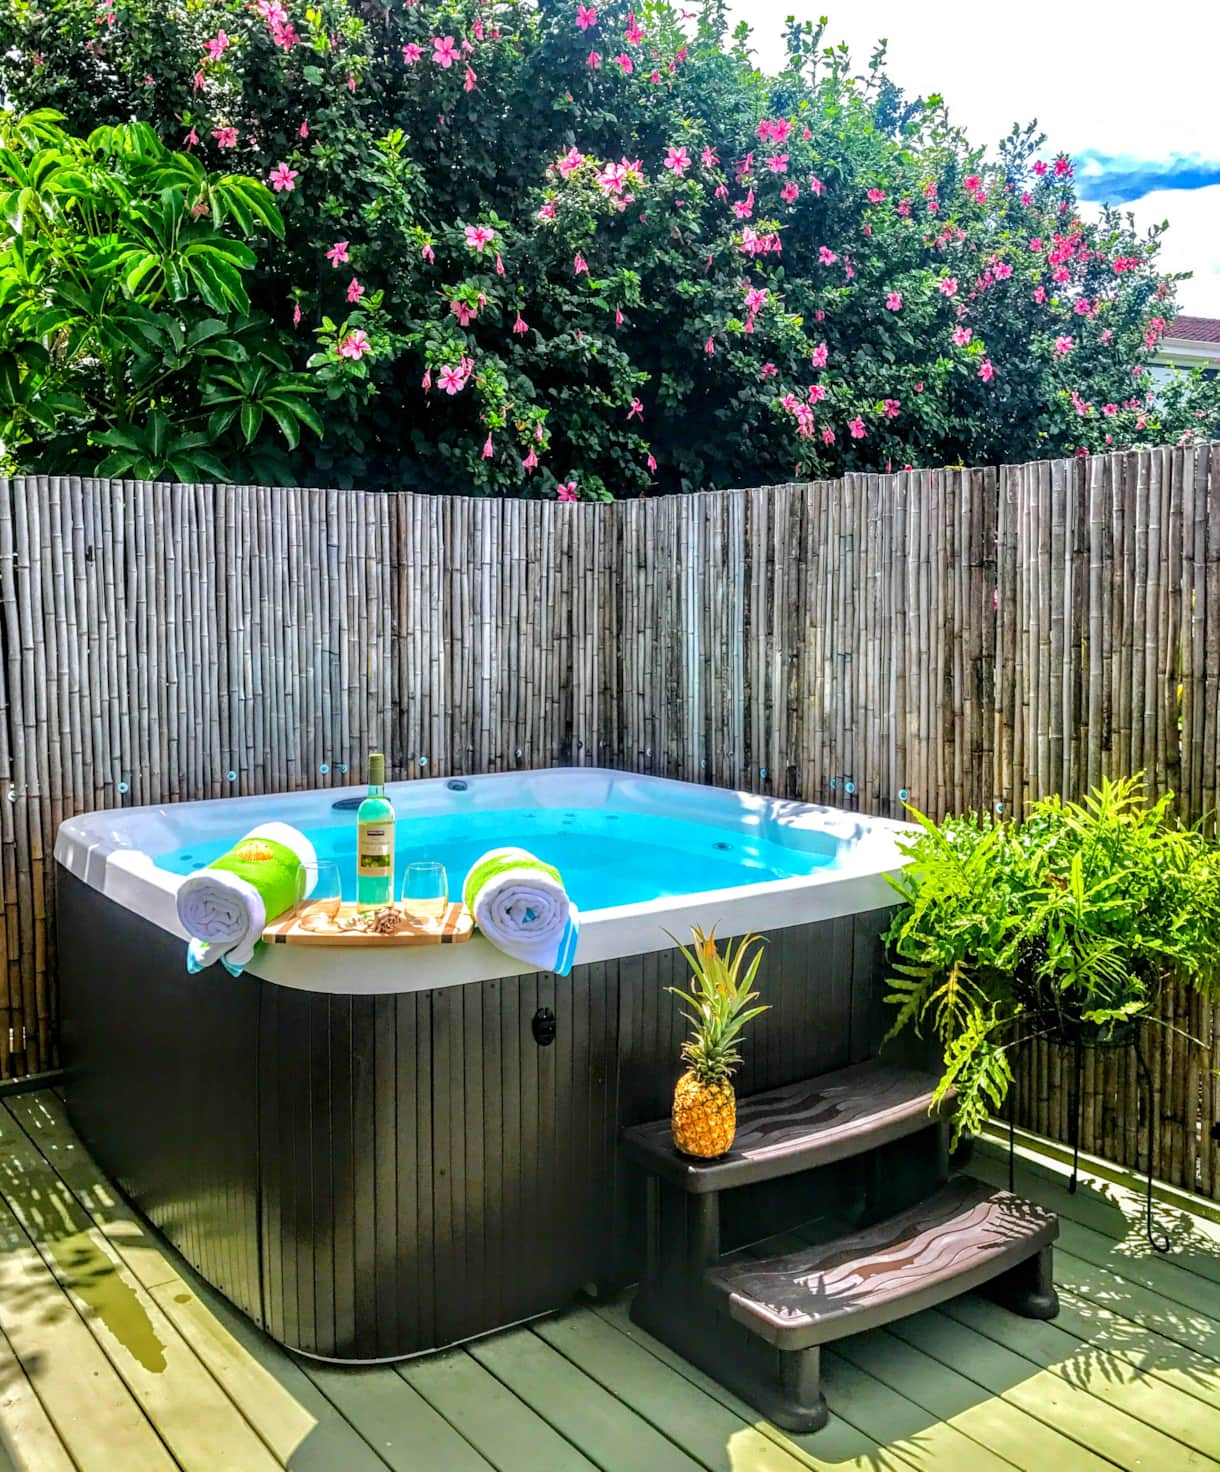 Hot tub spa on rear lanai with sunset view adjacent to the master bedroom at the Hale Makamaka.